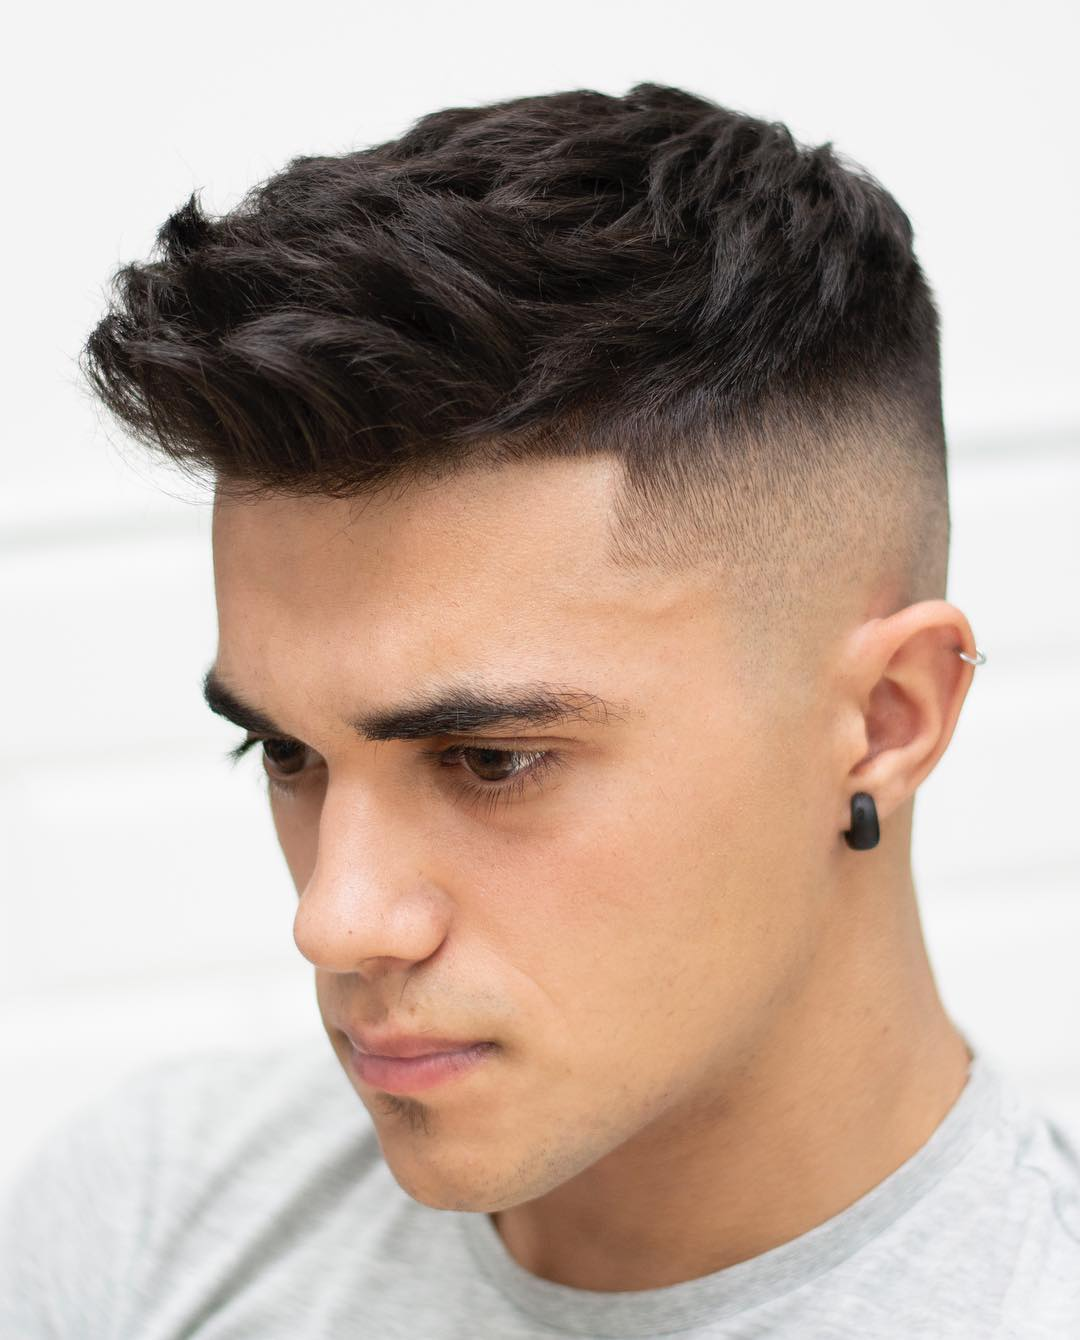 5+ Teen Boy Haircuts That Are Super Cool + Stylish For 5